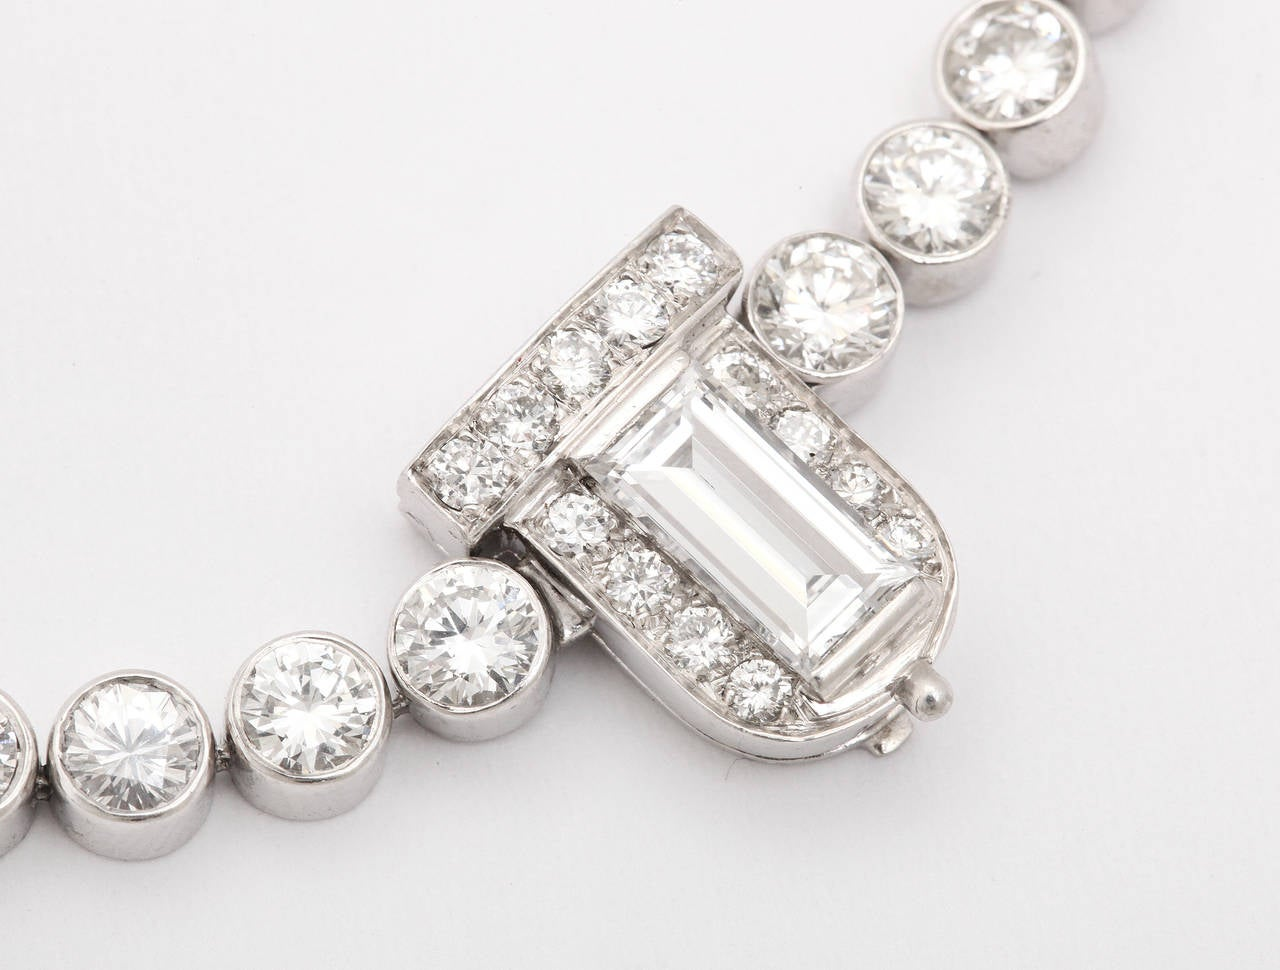 Platinum and bezel set rivière necklace with a central large baguette cut  diamond clasp.  The clasp has a concealed pendant loop on the back, allowing for a drop or pendant to be hung.